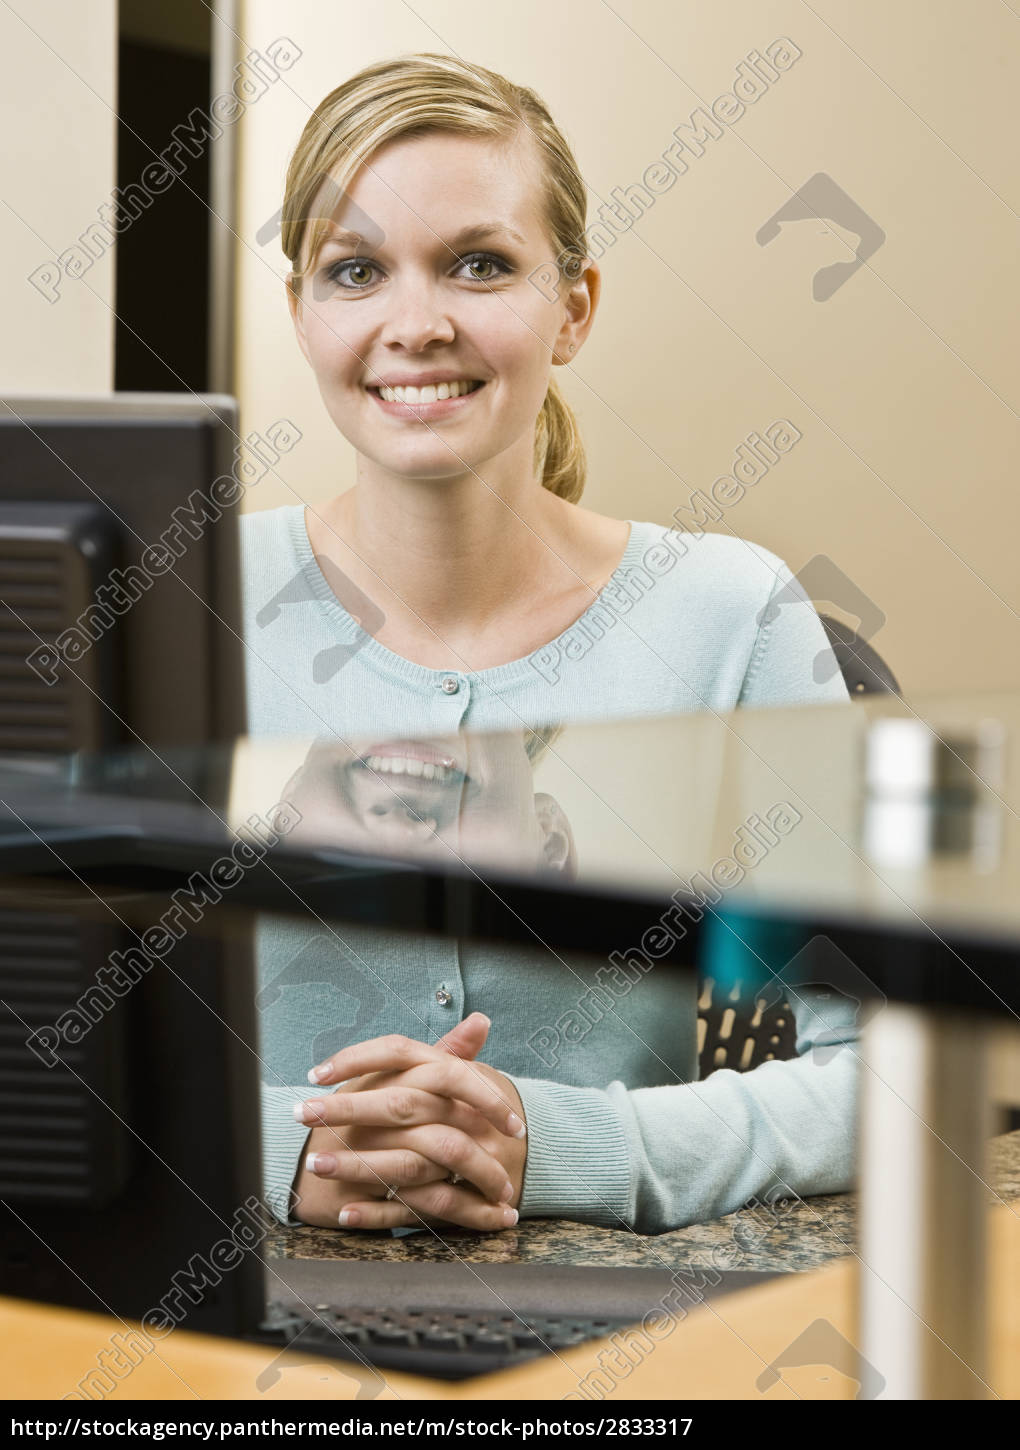 woman, office, laugh, laughs, laughing, twit - 2833317